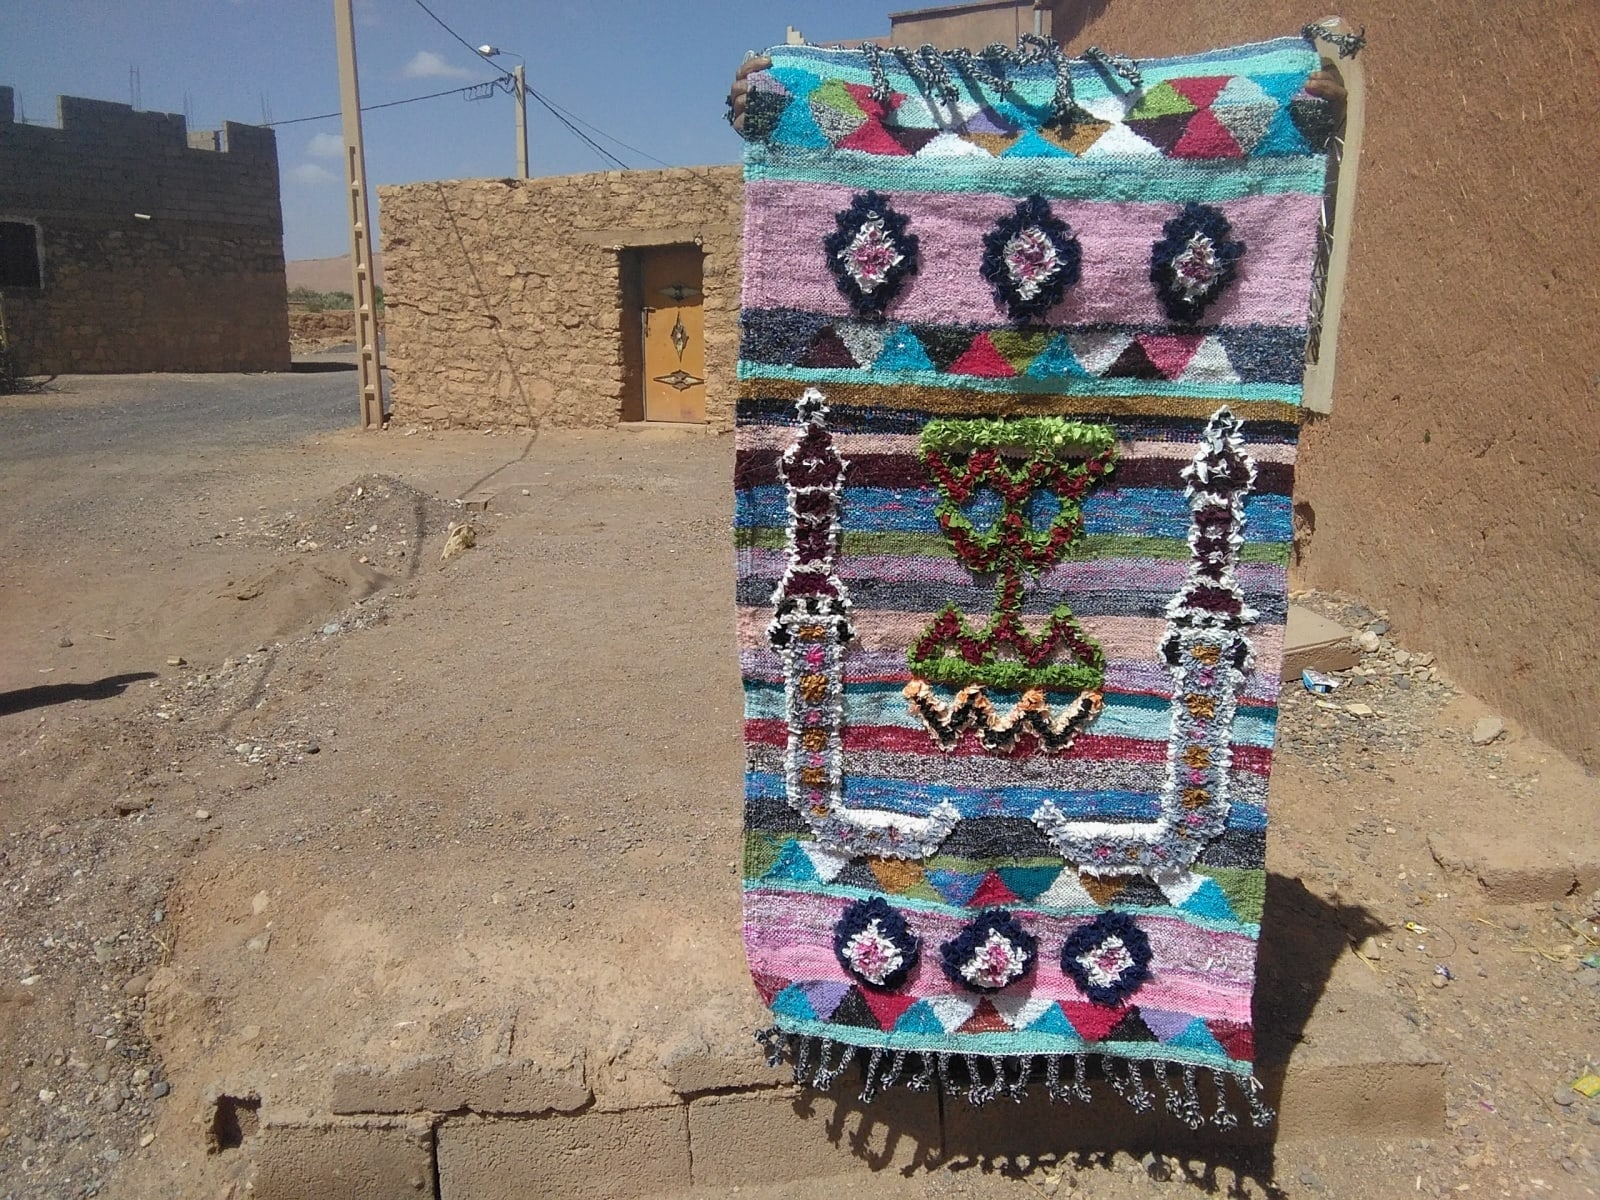 Pile Knot Rug  Up Cycled Thread  Colored Morocco